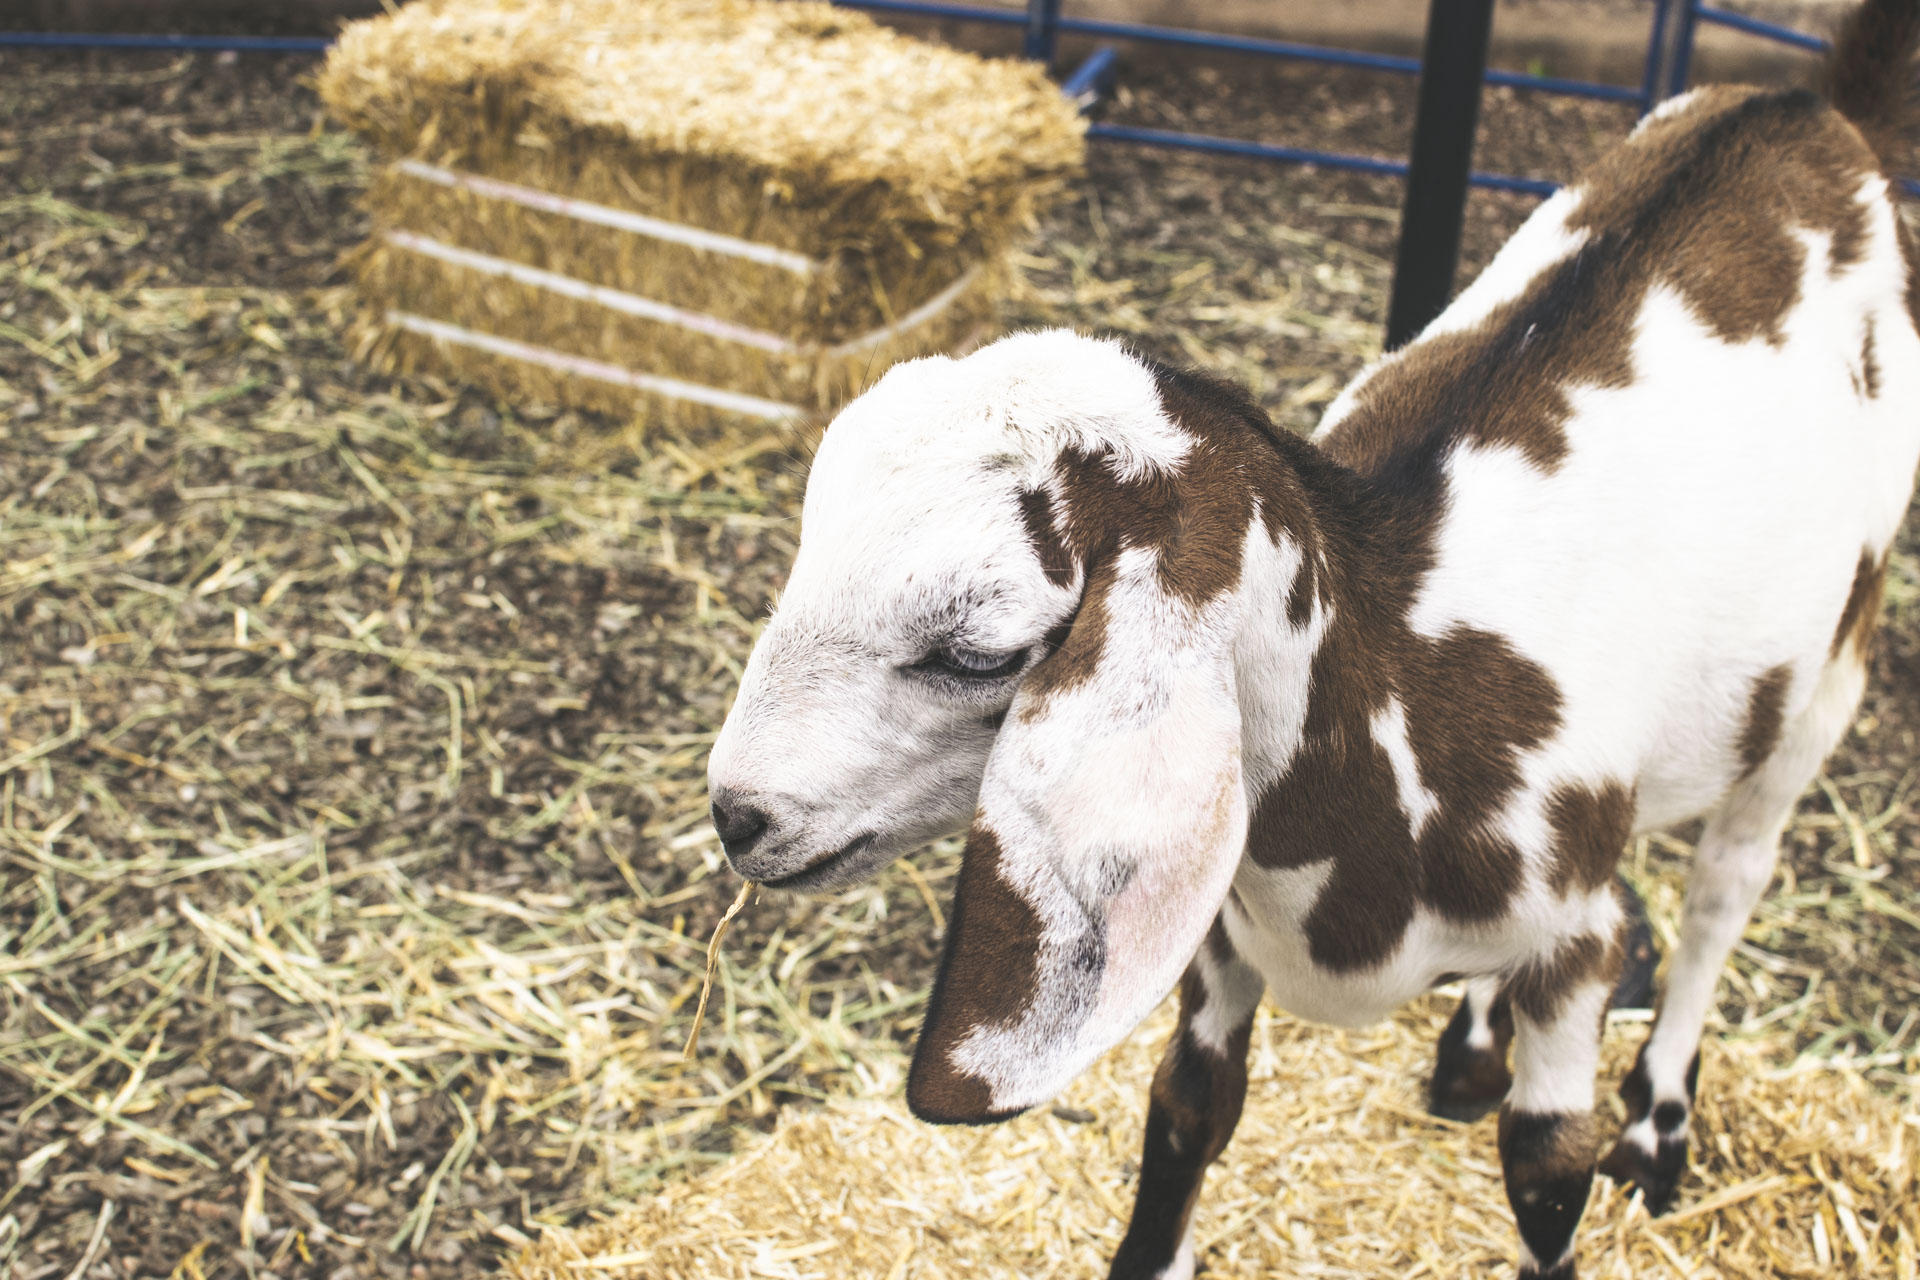 It wouldn't be a party at Goat Patch without goats, right?